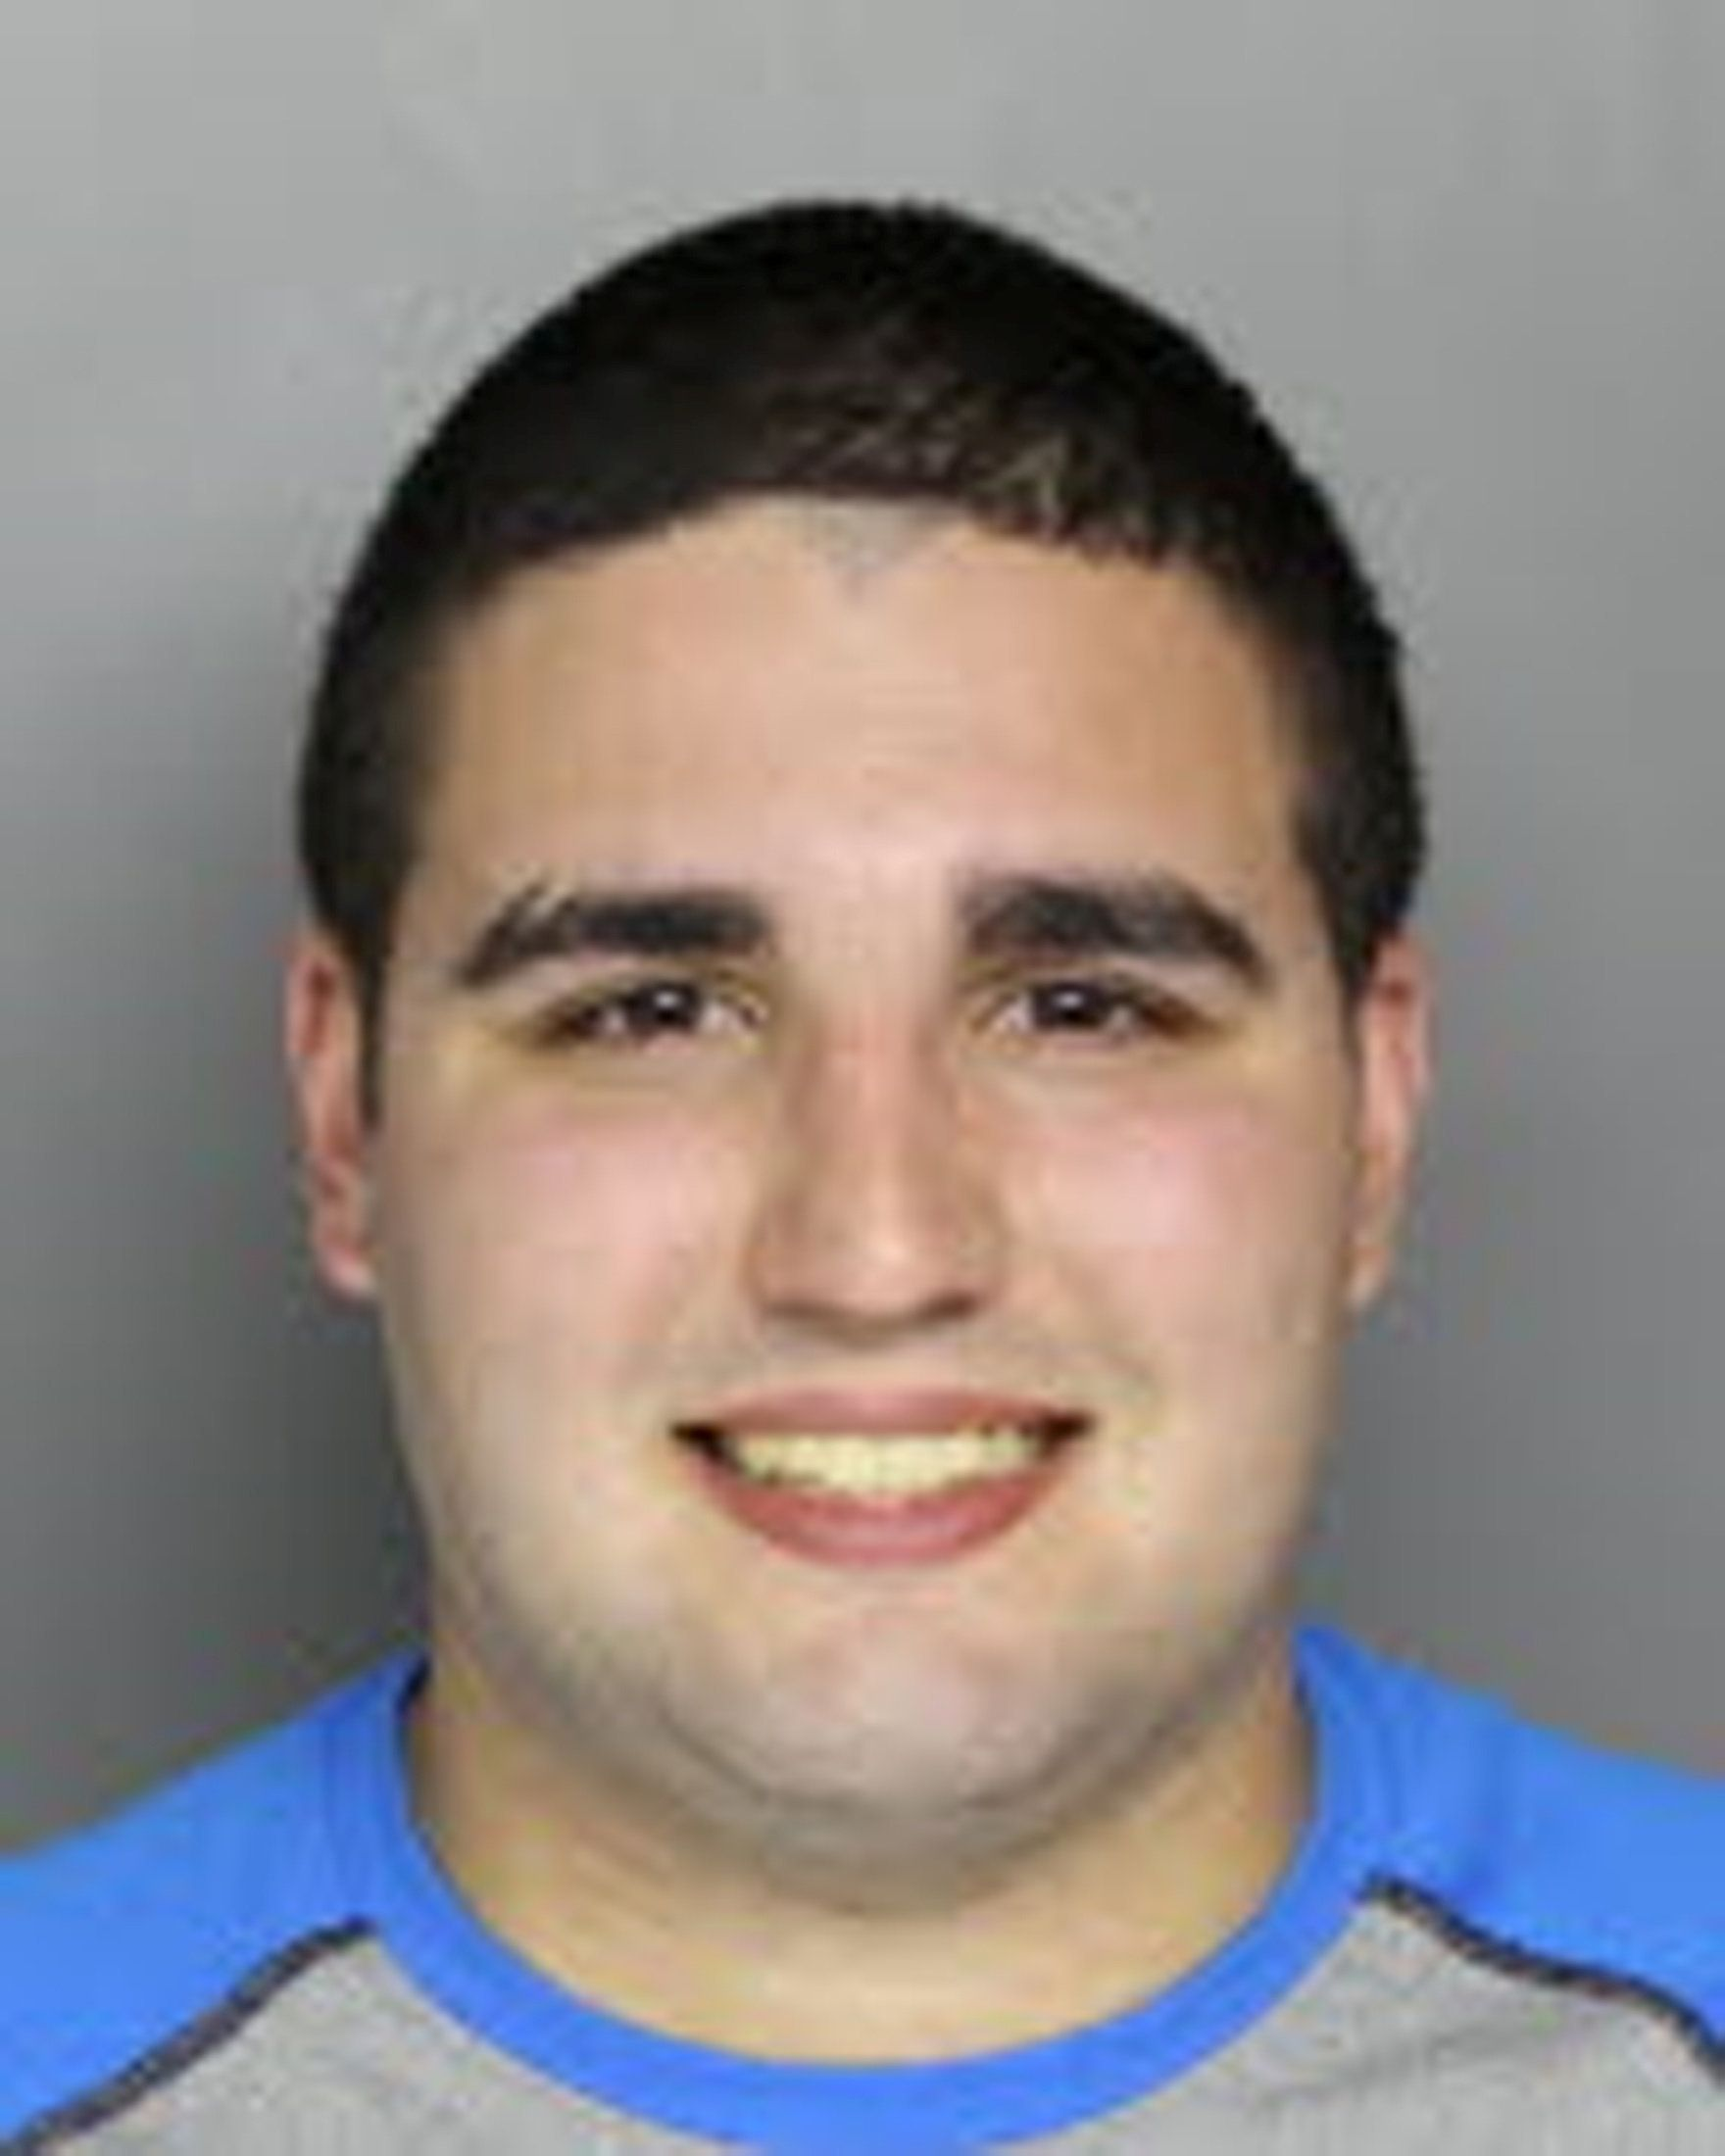 Bucks County District Attorney's Office photo of Cosmo DiNardo after his arrest on Monday in Bucks County, about 40 miles north of Philadelphia, Pennsylvania, U.S. in this image released on July 11, 2017.  Courtesy Bucks County District Attorney's Office/Handout via REUTERS   ATTENTION EDITORS - THIS IMAGE WAS PROVIDED BY A THIRD PARTY.